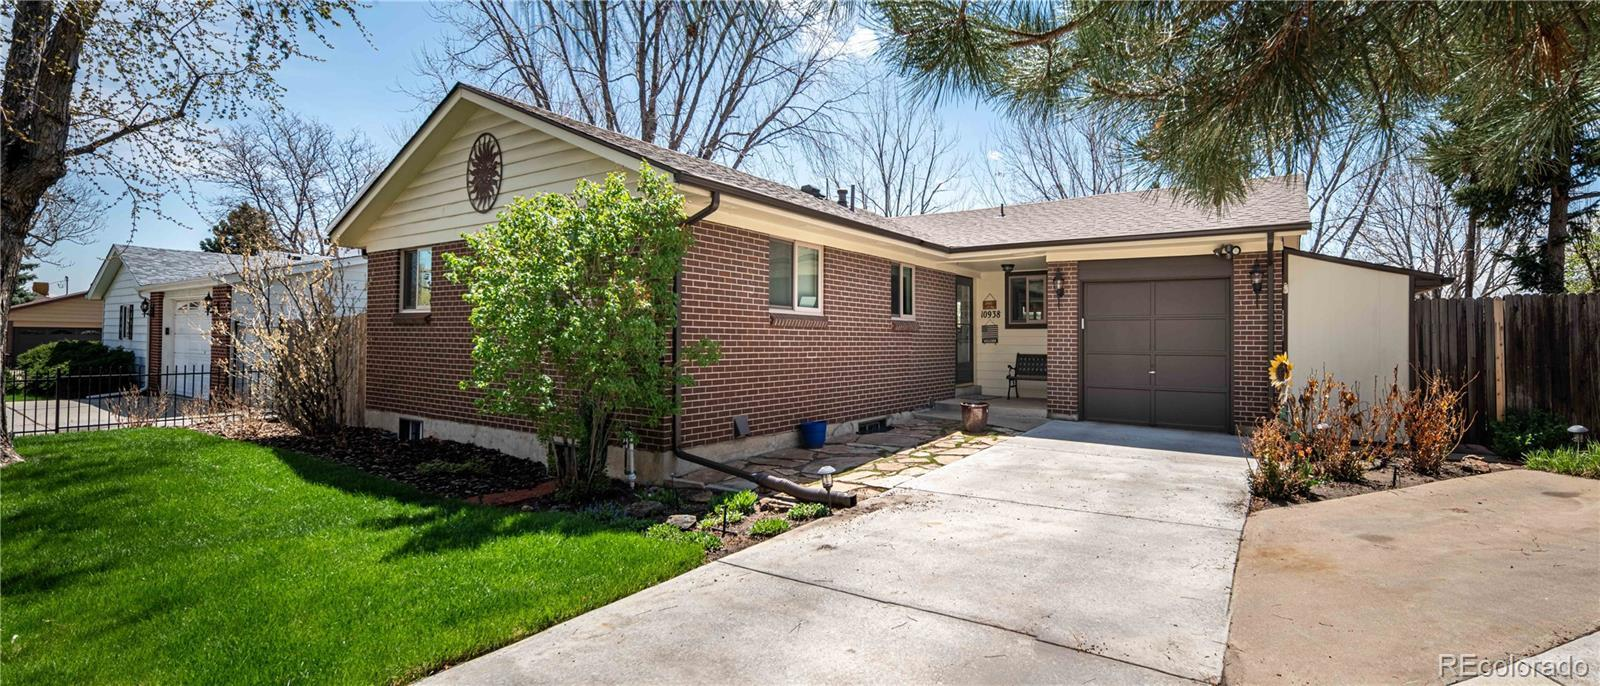 10938 W 59th Place, Arvada, CO 80004 - MLS#: 3746131